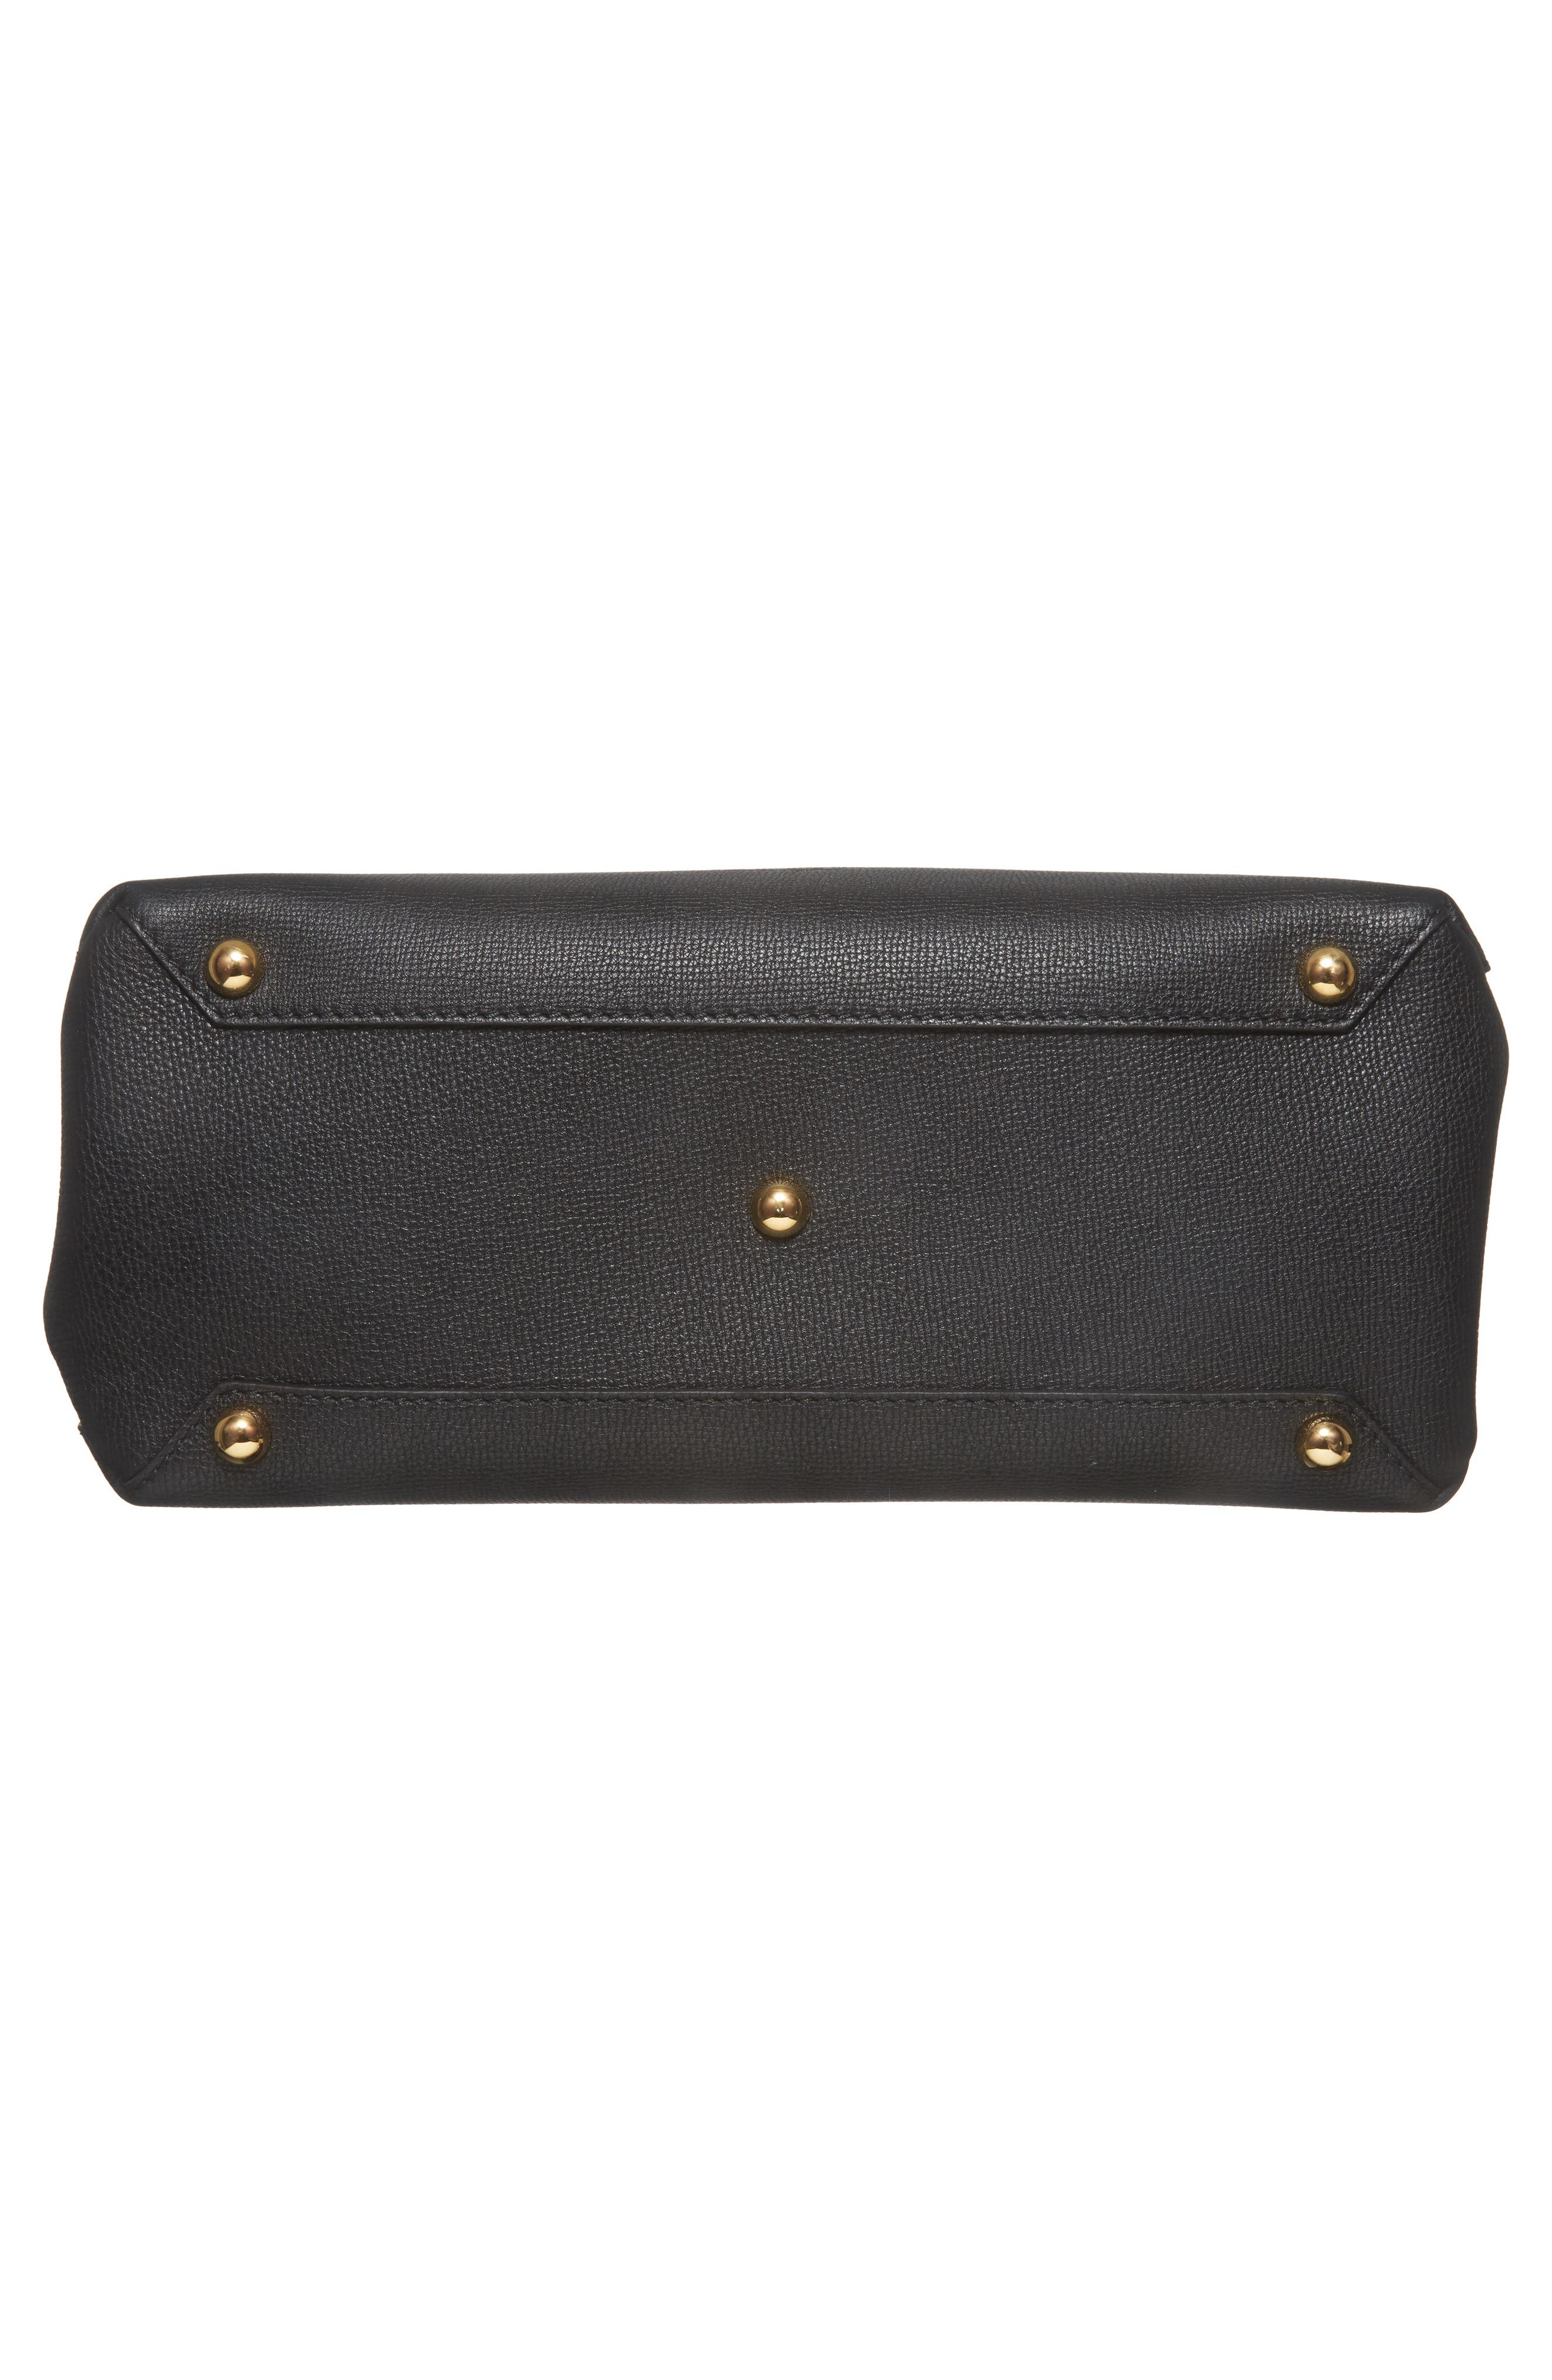 Medium Camberley Leather & House Check Top Handle Satchel,                             Alternate thumbnail 6, color,                             001